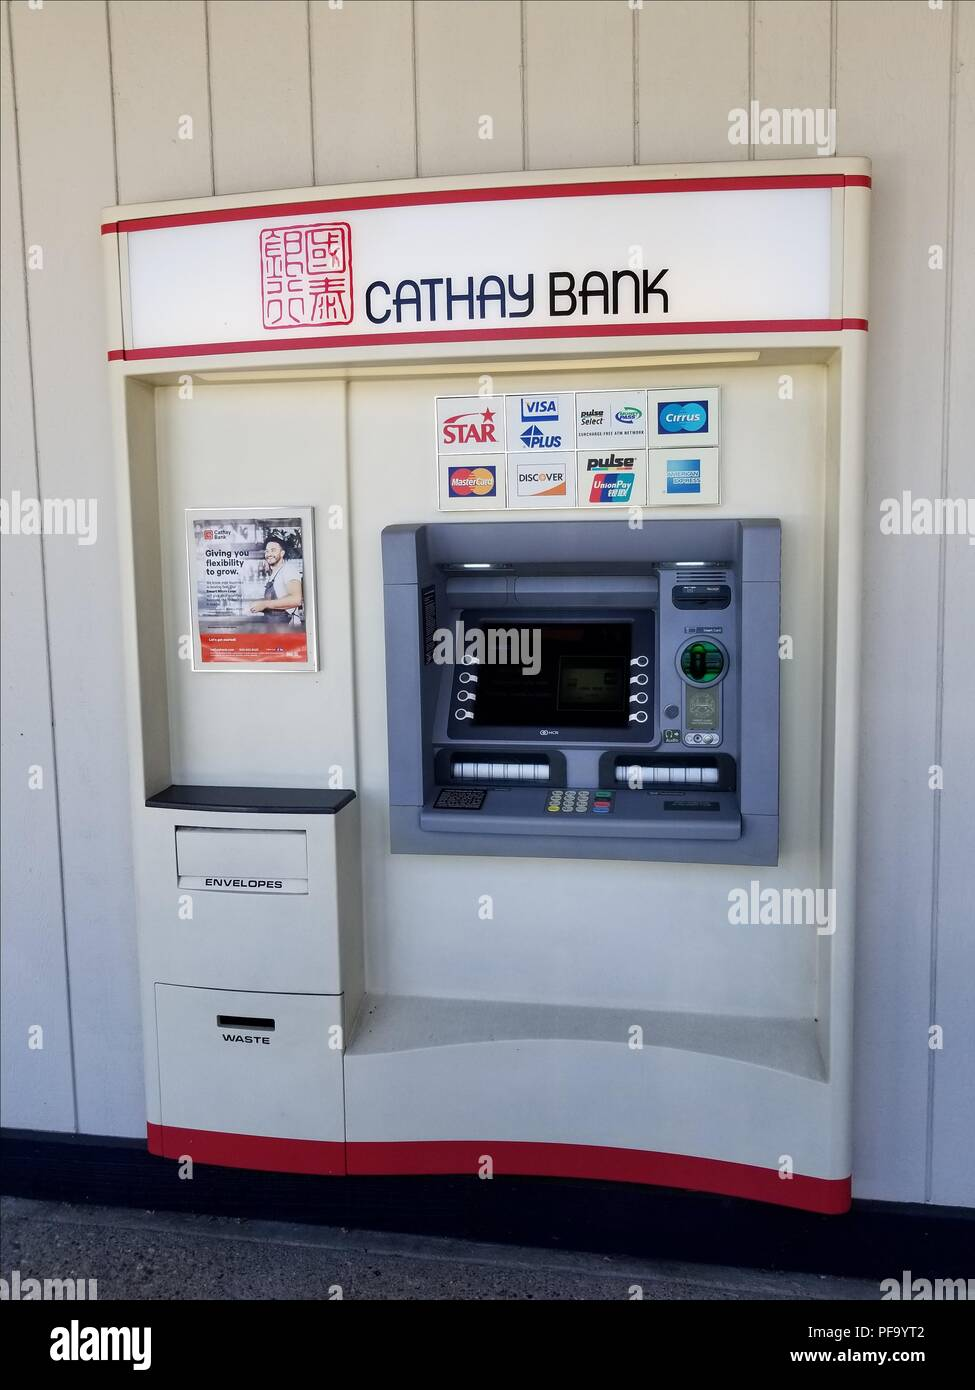 ATM (Automated Teller Machine) for Dublin, California branch of